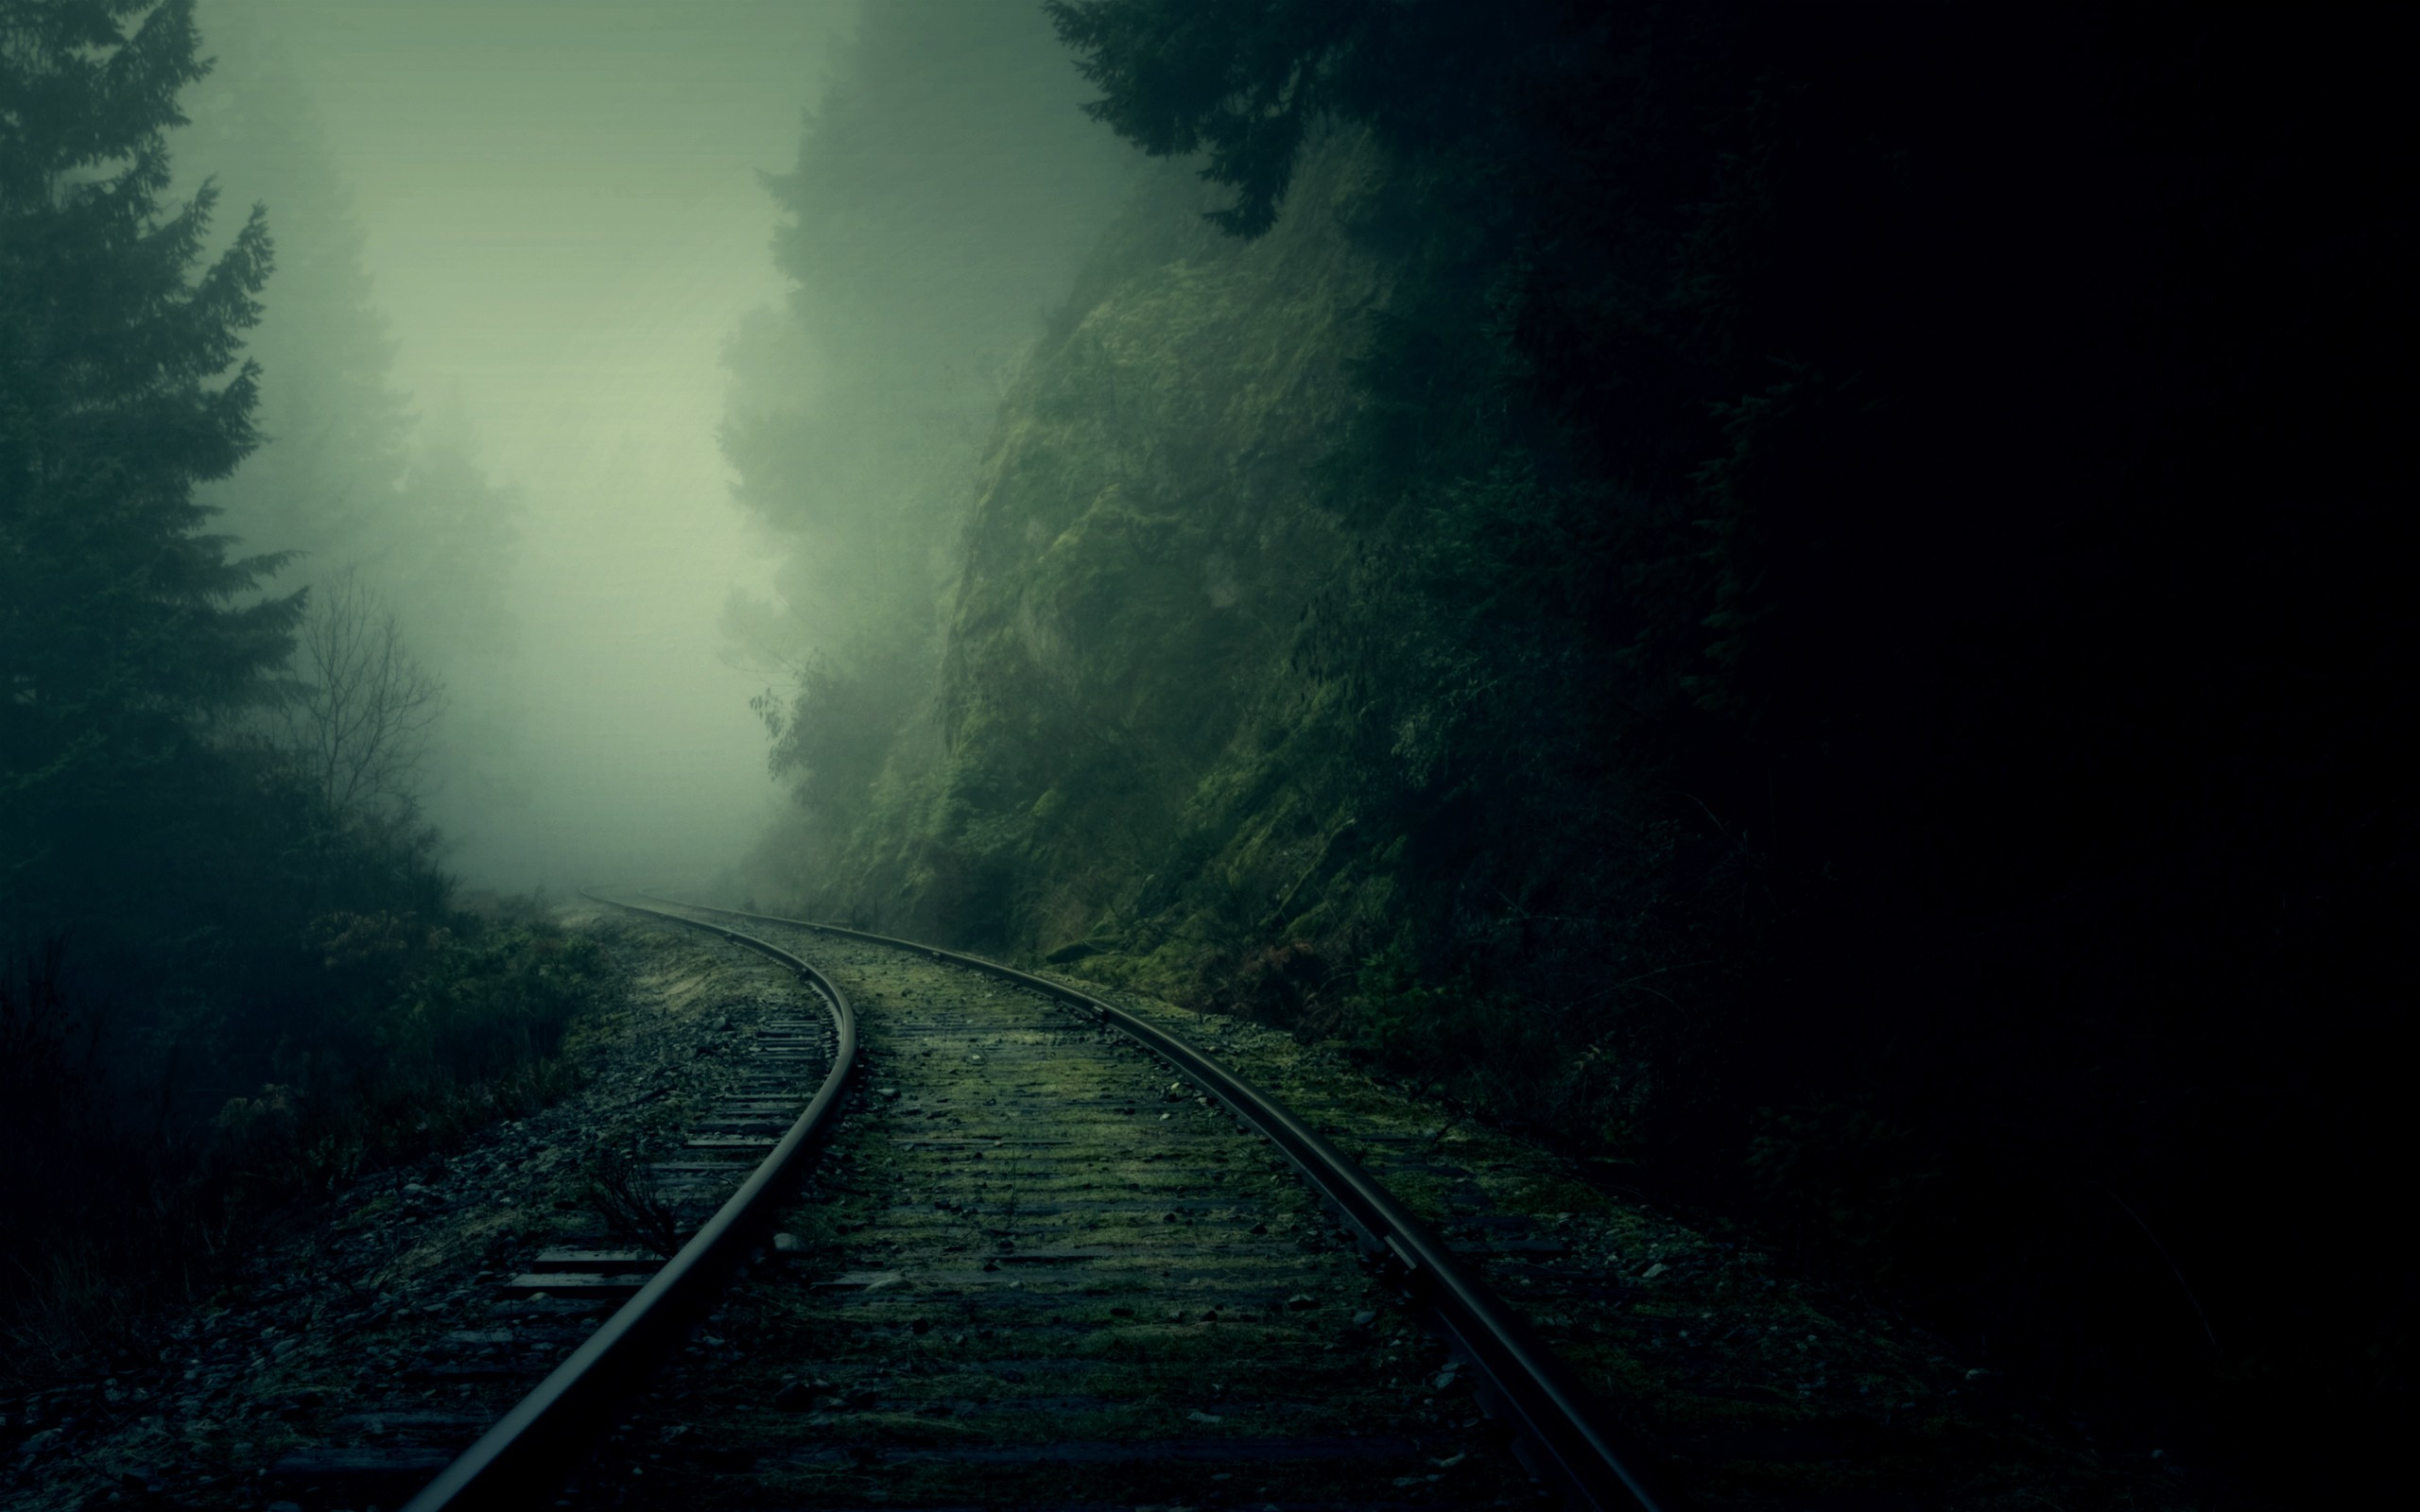 Dark Railroad Landscape Wallpaper Hd Wallpaperwiki